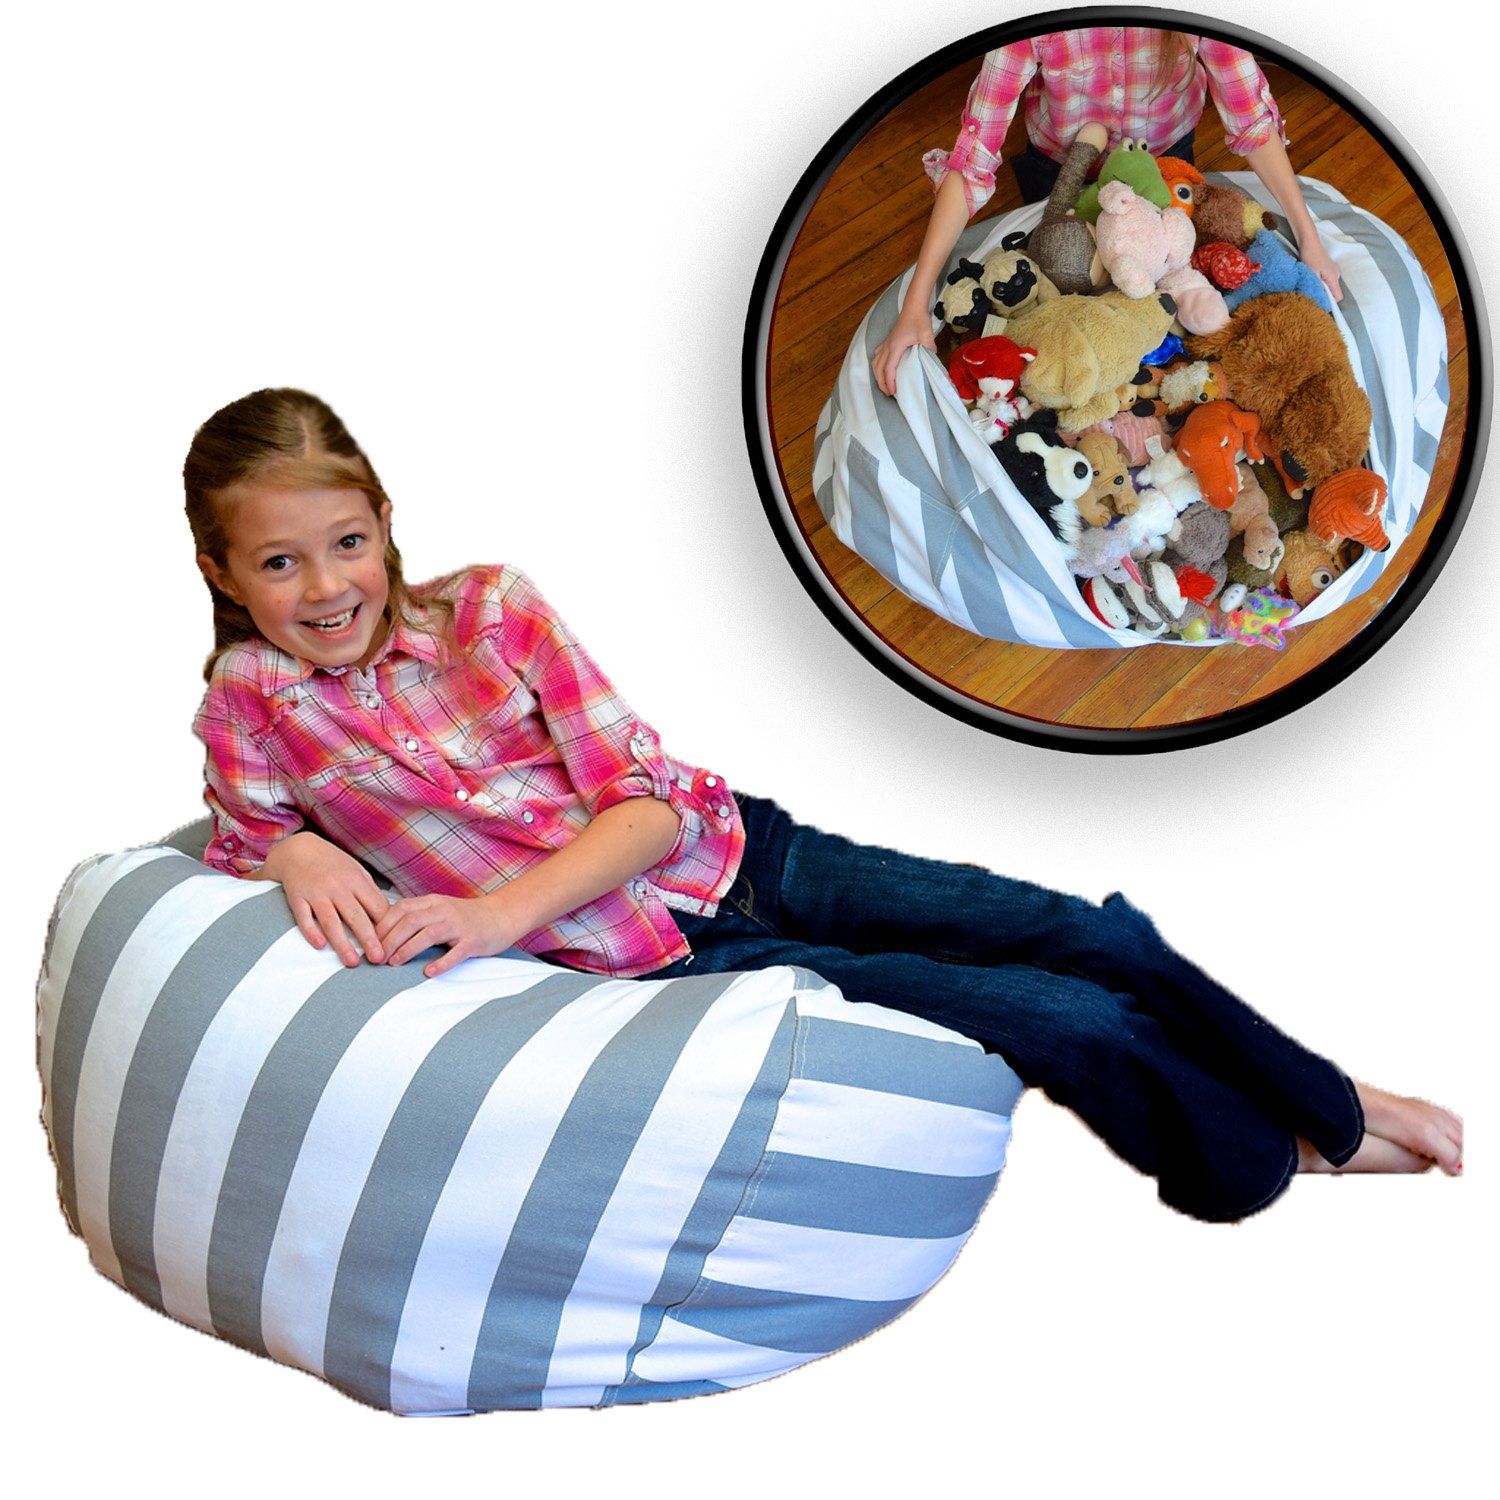 Bean bag chairs for kids - Extra Large Stuffed Animal Storage Bean Bag Chair Premium Cotton Canvas Clean Up The Room And Put Those Critters To Work For You